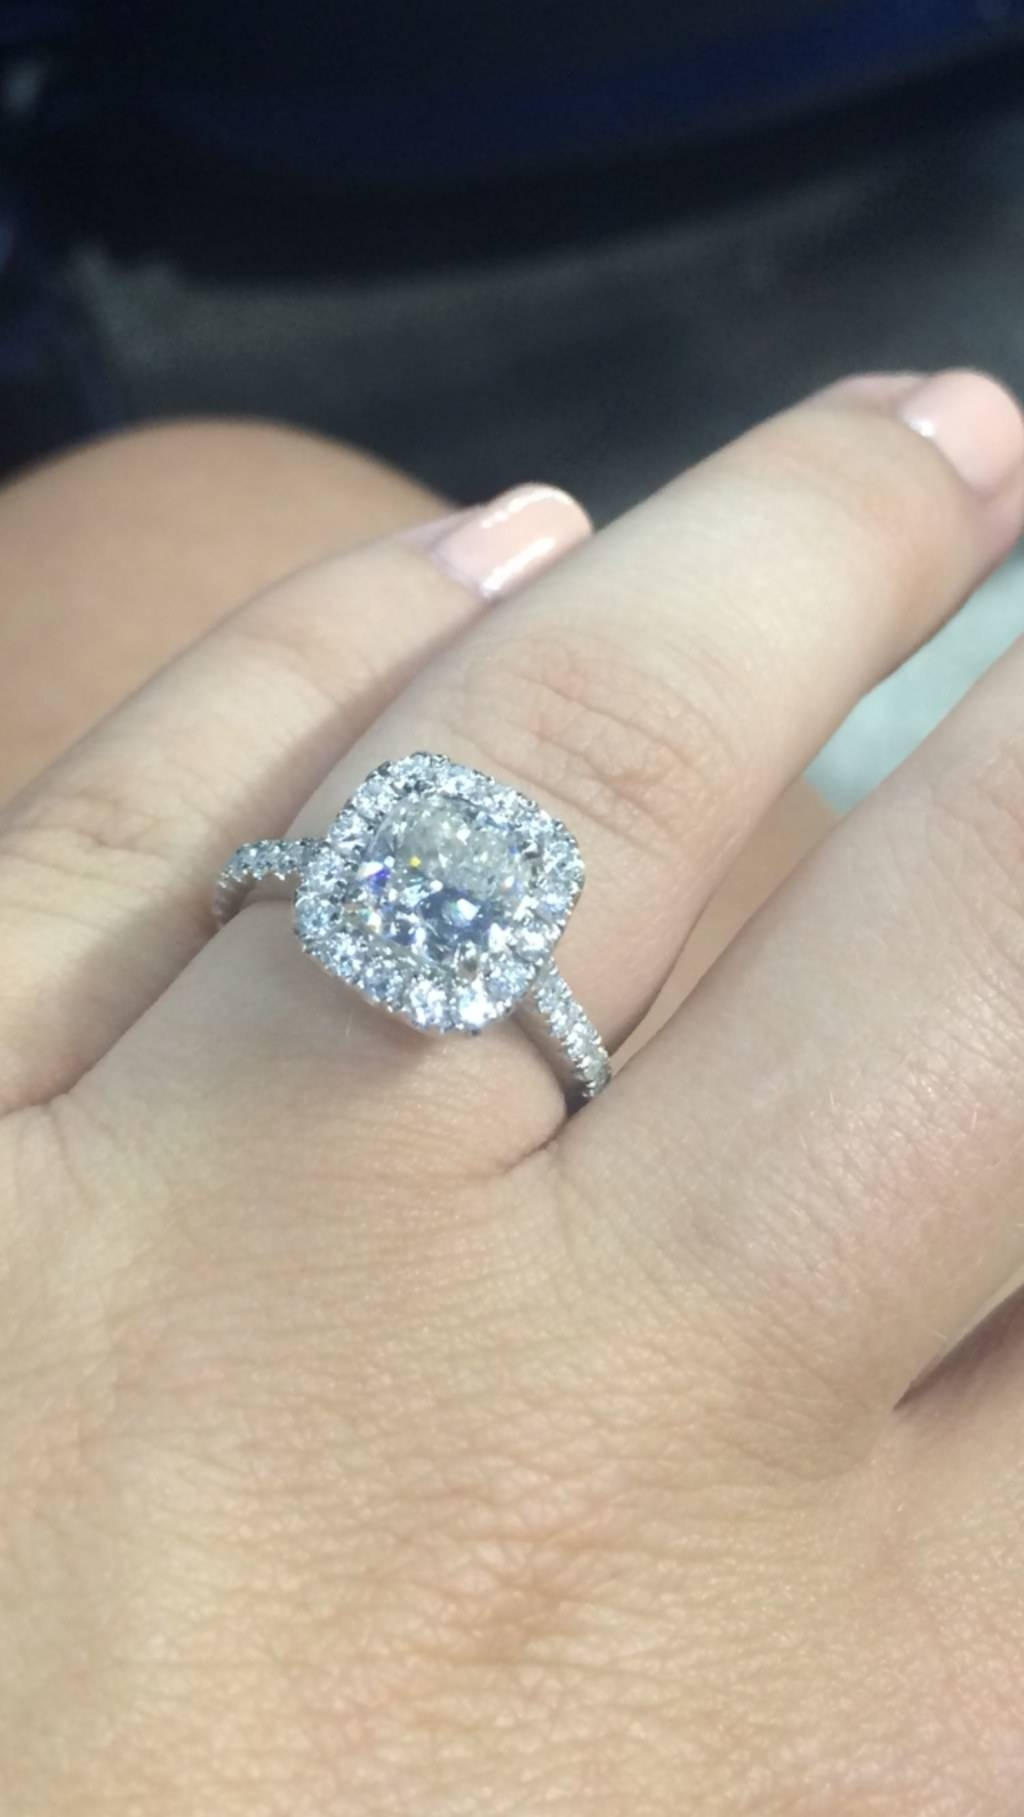 Real Girl Engagement Rings, Proposal Stories; Diamond Engagement Pertaining To Real Diamond Wedding Rings (Gallery 3 of 15)